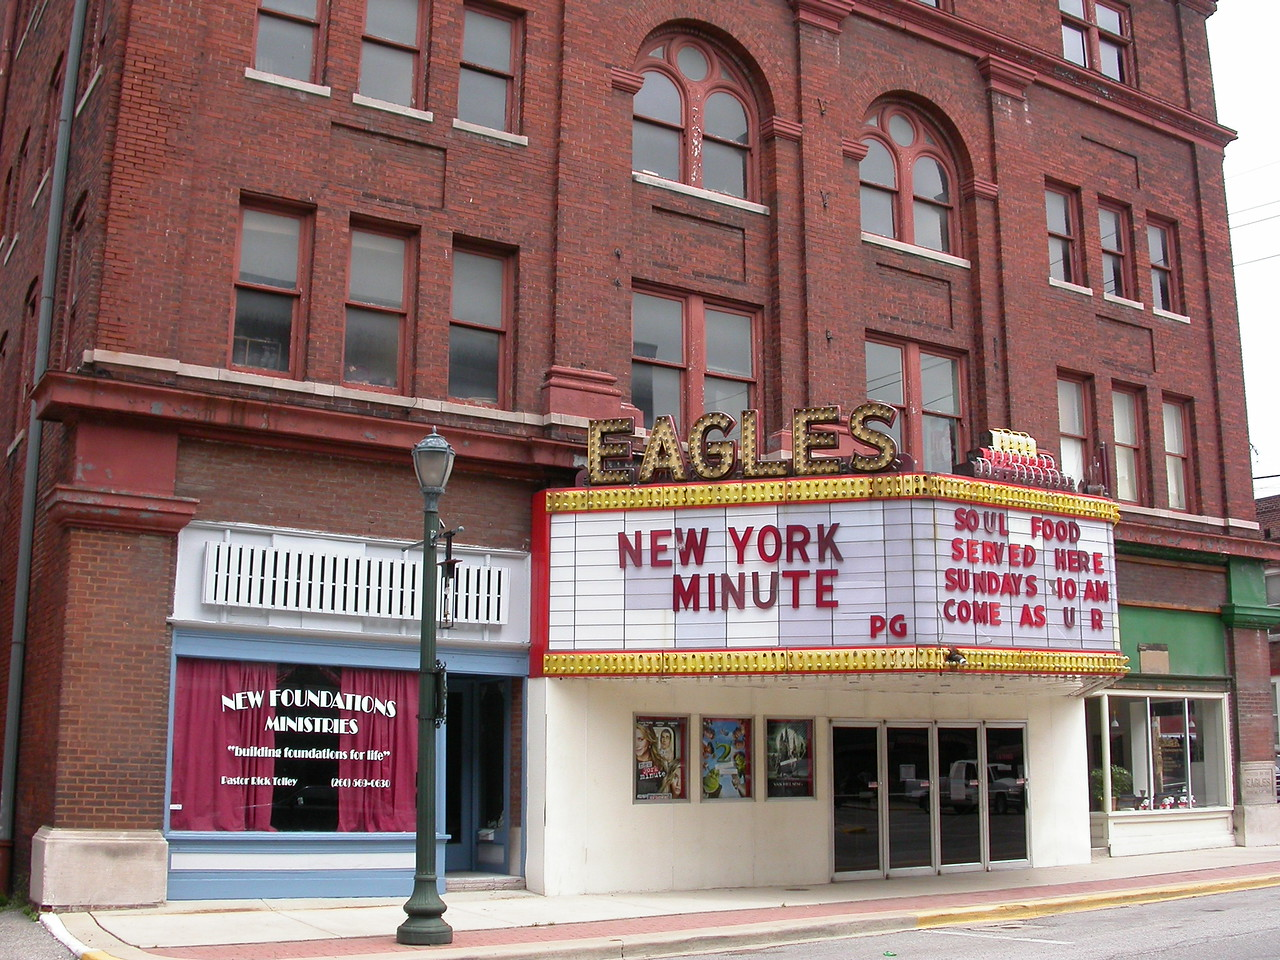 Eagles Theatre in Wabash, Indiana.